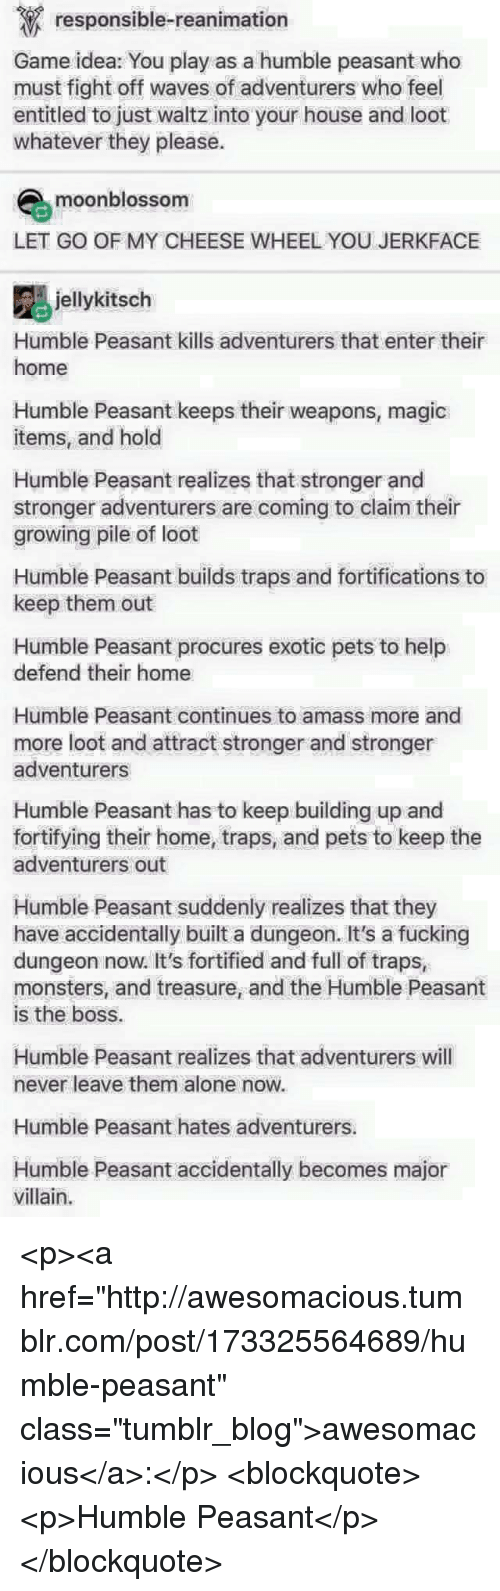 """Being Alone, Fucking, and Tumblr: responsible-reanimation  Game idea: You play as a humble peasant who  must fight off waves of adventurers who feel  entitled to just waltz into your house and loot  whatever they please  moonblossom  LET GO OF MY CHEESE WHEEL YOU JERKFACE  jellykitsch  Humble Peasant kills adventurers that enter their  home  Humble Peasant keeps their weapons, magic  items, and hold  Humble Peasant realizes that stronger and  stronger adventurers are coming to claim their  growing pile of loot  Humble Peasant builds traps and fortifications to  keep them out  Humble Peasant procures exotic pets to help  defend their home  Humble Peasant continues to amass more and  more loot and attract stronger and stronger  adventurers  Humble Peasant has to keep building up and  fortifying their home, traps, and pets to keep the  adventurers out  Humble Peasant suddenly realizes that they  have accidentally built a dungeon. It's a fucking  dungeon now. It's fortified and full of traps,  monsters, and treasure, and the Humble Peasant  is the boss.  Humble Peasant realizes that adventurers will  never leave them alone now.  Humble Peasant hates adventurers.  Humble Peasant accidentally becomes major  villain. <p><a href=""""http://awesomacious.tumblr.com/post/173325564689/humble-peasant"""" class=""""tumblr_blog"""">awesomacious</a>:</p>  <blockquote><p>Humble Peasant</p></blockquote>"""